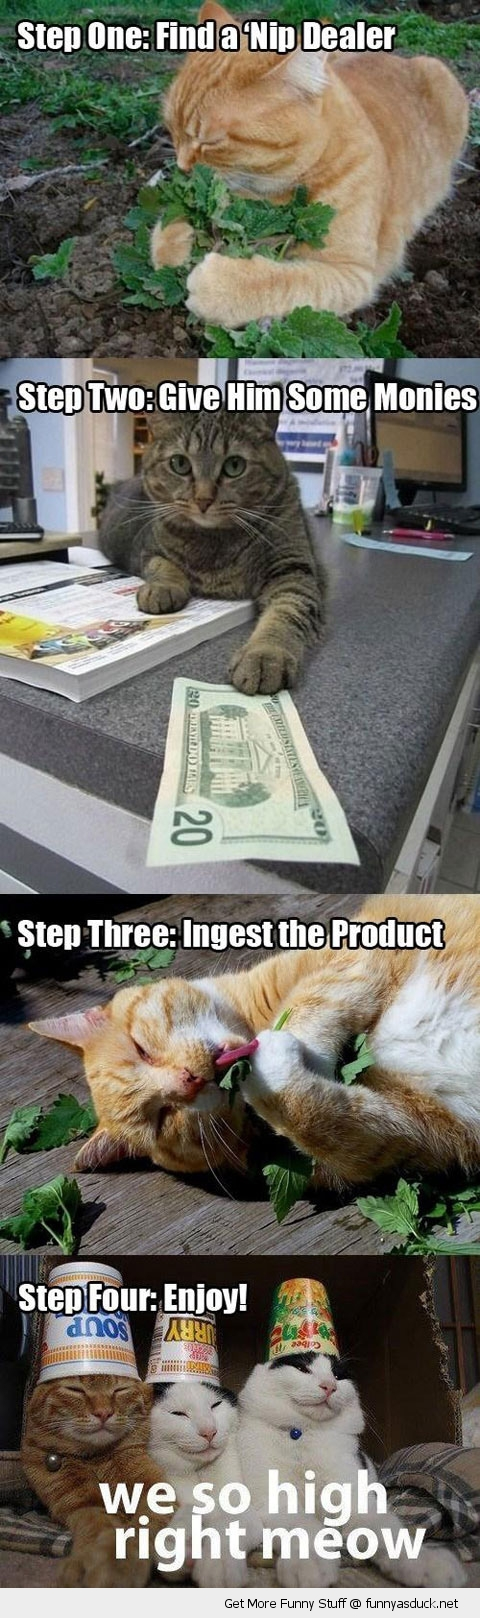 high stoned cats lolcats animals catnip funny pics pictures pic picture image photo images photos lol